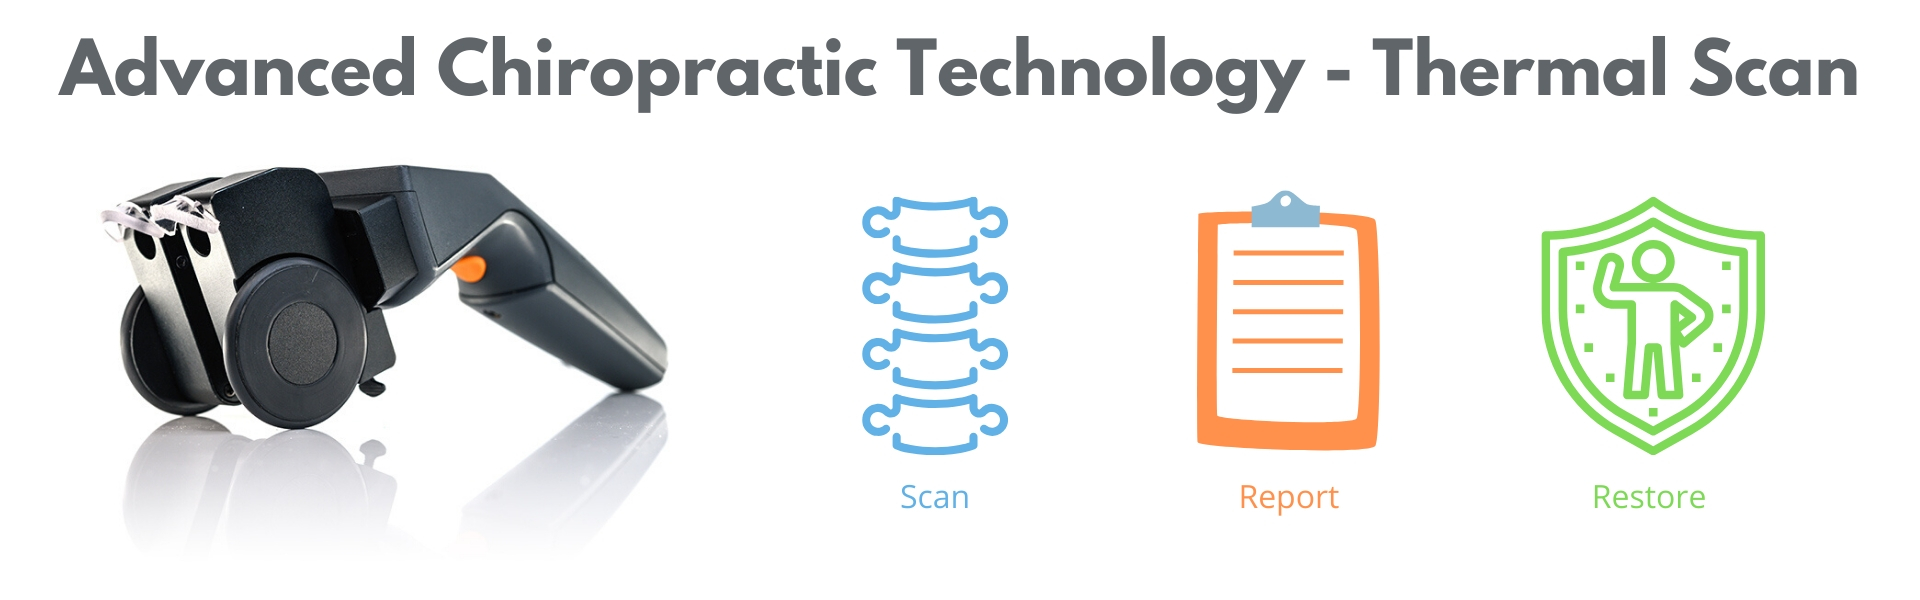 Advanced Chiropractic Technology - Thermal Scan